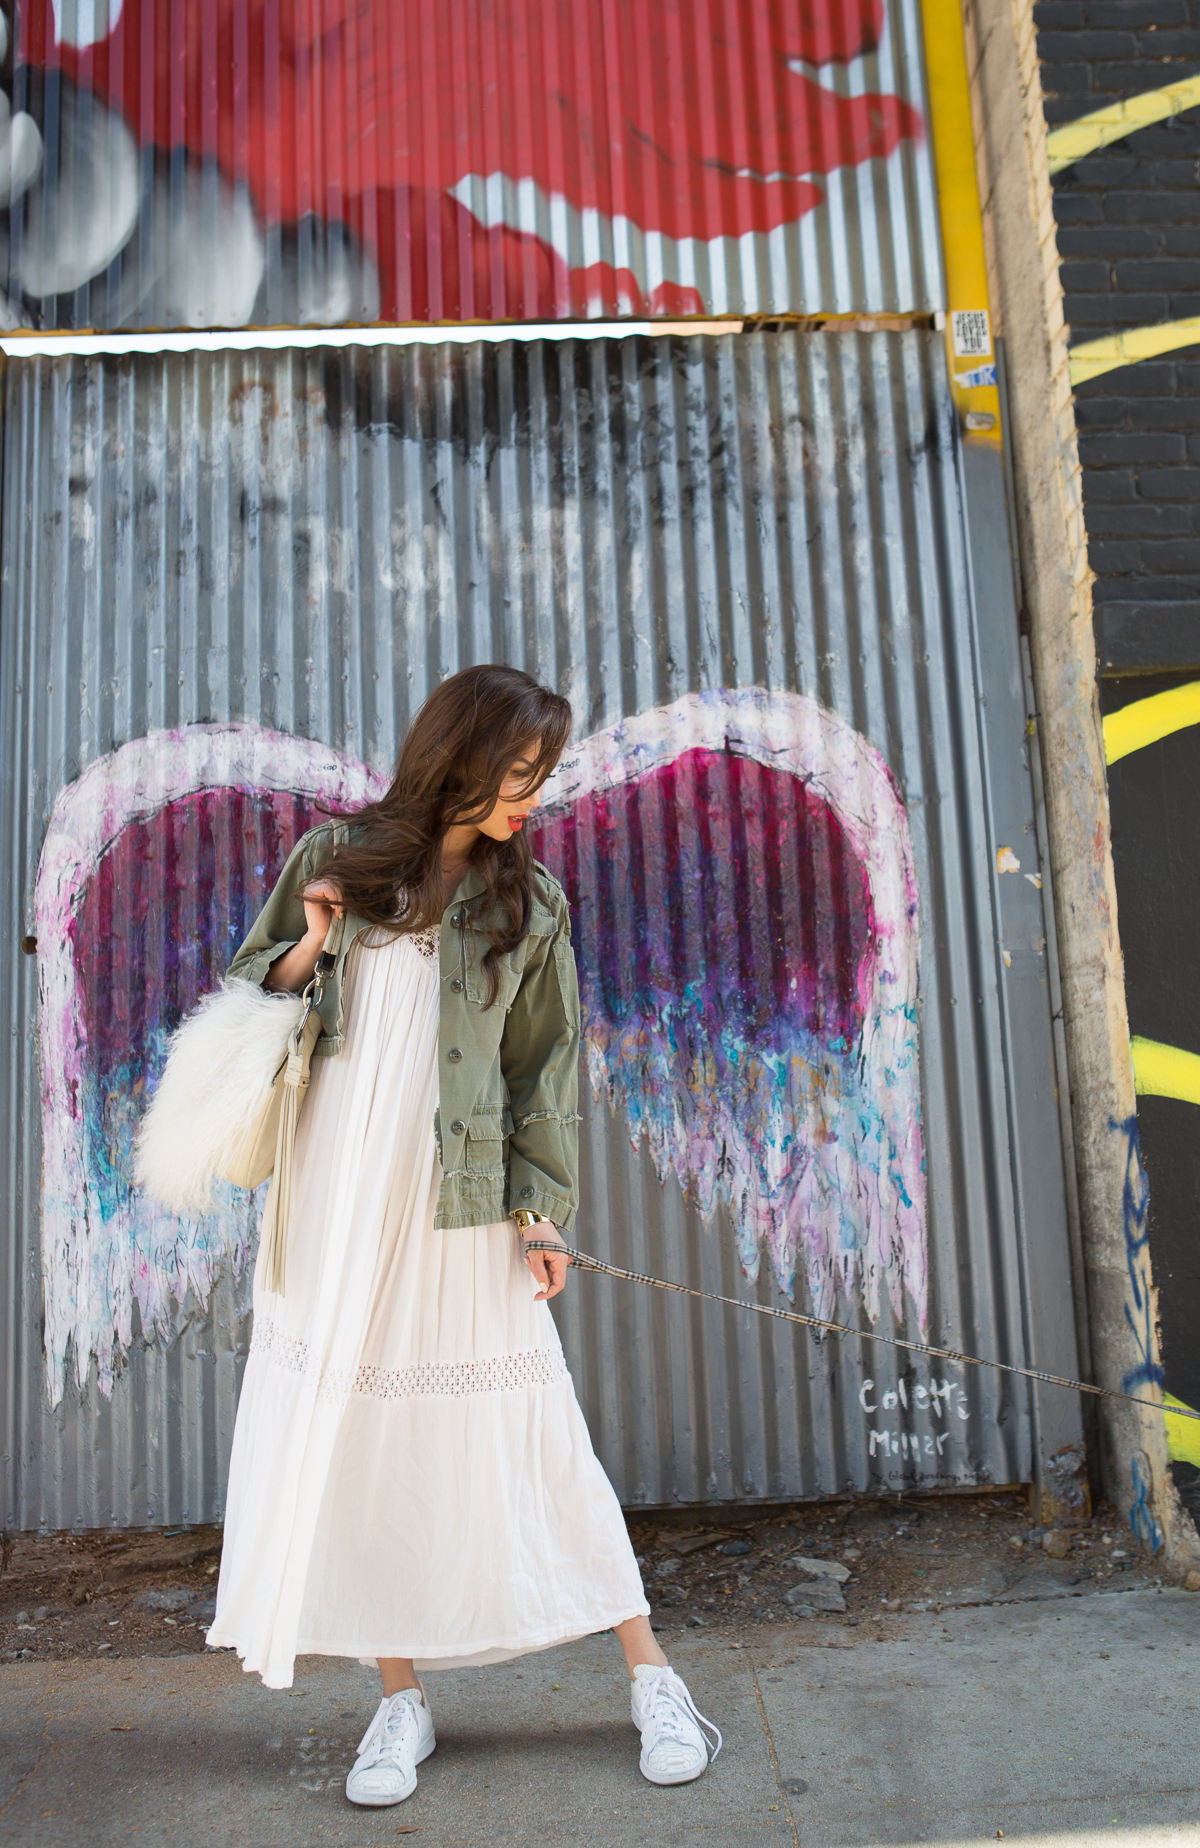 "angel wings los angeles, angel mural, angel wings mural, angel mural la, angel mural los angeles, angel wings mural la, angel wings mural los angeles, custom stan smiths, custom adidas, custom stan smith adidas, womens white stan smith, womens white adidas, vintage army jacket, womens vintage army jacket, make a wish, make a wish san diego, ronald mcdonald, ronald mcdonald house, ronald mcdonald house charities, ronald mcdonald san diego, ronald mcdonald house san diego, Cristina Ramella ""World"" cuff, pajama trend, fashion pajamas, pajamas out of house, womens pajama top, womens pajama blouse, womens striped pajama top, womens striped pajama blouse, loeil, loeil rama pajama blouse, loeil blouse, loeil top, loeil shirt, off shoulder blouse, striped off shoulder blouse, off shoulder top, striped off shoulder top, pajama blouse, walls la, walls los angeles, street art la, street art los angeles, geren ford, geren ford scarf, black skinny scarf, black silk skinny scarf, redone elsa jeans, xiv karats, xiv karats los angeles, xiv karats beverly hills, xiv karats necklace, xiv karats ring, xiv karats diamond necklace, xiv karats diamond ring, catbird ny, catbird nyc, catbird rings, catbird gold rings, seoul little, seoul little los angeles, seoul little los angeles necklace, los angeles necklace, fashion blogger social media, blogging social media, blogger social media, fashion blog social media, fashion blog instagram, fashion blogger instagram, los angeles fashion blog instagram, los angeles fashion blogger instagram, fashion blog snapchat, fashion blogger snapchat, los angeles fashion blog snapchat, los angeles fashion blogger snapchat, fashion blog facebook, fashion blogger facebook, los angeles fashion blog facebook, los angeles fashion blogger facebook, graffiti, graffiti dtla, graffiti los angeles, graffiti la, graffiti downtown, graffiti downtown los angeles, graffiti downtown la, dtla, photoshoot dtla, photo shoot dtla, model dtla, downtown la, downtown los angeles, downtown la photoshoot, downtown la photo shoot, downtown los angeles photoshoot, downtown los angeles photo shoot, woman holding dog, model holding dog, la river photo shoot, la river photo shoot locations, la river model, la river model photo shoot, la river modeling, los angeles river, los angeles river photo shoot, 6th street bridge, 6th street bridge los angeles, 6th street bridge downtown la, 6th street bridge la, 6th street bridge downtown los angeles, 6th street bridge dtla, michele lobosco, photographer michele lobosco, how to write a fashion blog, starting a blog, how to write a blog, starting a fashion blog, how to start a blog, how to start a fashion blog, tips for writing blog, tips for fashion blog, building blog, building fashion blog, street style, model street style, downtown los angeles fashion, downtown fashion, los angeles fashion, dtla fashion, dtla style, downtown los angeles style, downtown style, bodychain, gold bodychain, body chain, gold body chain, street style, street style la, street style los angeles, dtla, ootd, perfect blowout, model eyelashes, model perfect lips, artelier globe cuff, artelier map cuff, bodychain, body chain, gold bodychain, gold body chain, dtla photoshoot, dtla photo shoot, downtown la photoshoot, downtown la photo shoot, model dtla, model downtown la, model downtown los angeles, arts district, arts district la, arts district los angeles, artists district, artists district la, artists district los angeles, 6th street bridge la, 6th street bridge los angeles, drybar, blushington, drybar cosmo blowout, drybar model, drybar blowout, blushington makeup, rms beloved, nars lipstick, nars heat wave, nars heat wave lipstick, heat wave lipstick, off duty model style, los angeles style, camille newbern, papillon, the la survival guide, la survival guide, thelasurvivalguide, lasurvivalguide, eurasian models, eurasian actresses, los angeles fashion blogs, los angeles style blogs, shopping la, shopping los angeles, modeling la, modeling los angeles, long hair blowout, smile model, modeling smile, dog smile, papillon, papillon dog, los angeles photo shoot, model on dog walk, dog and model, papillon dog, los angeles photo shoot, model on dog walk, dog and model, camille newbern, camille hom newbern, imjudgingyou, pipthepap"